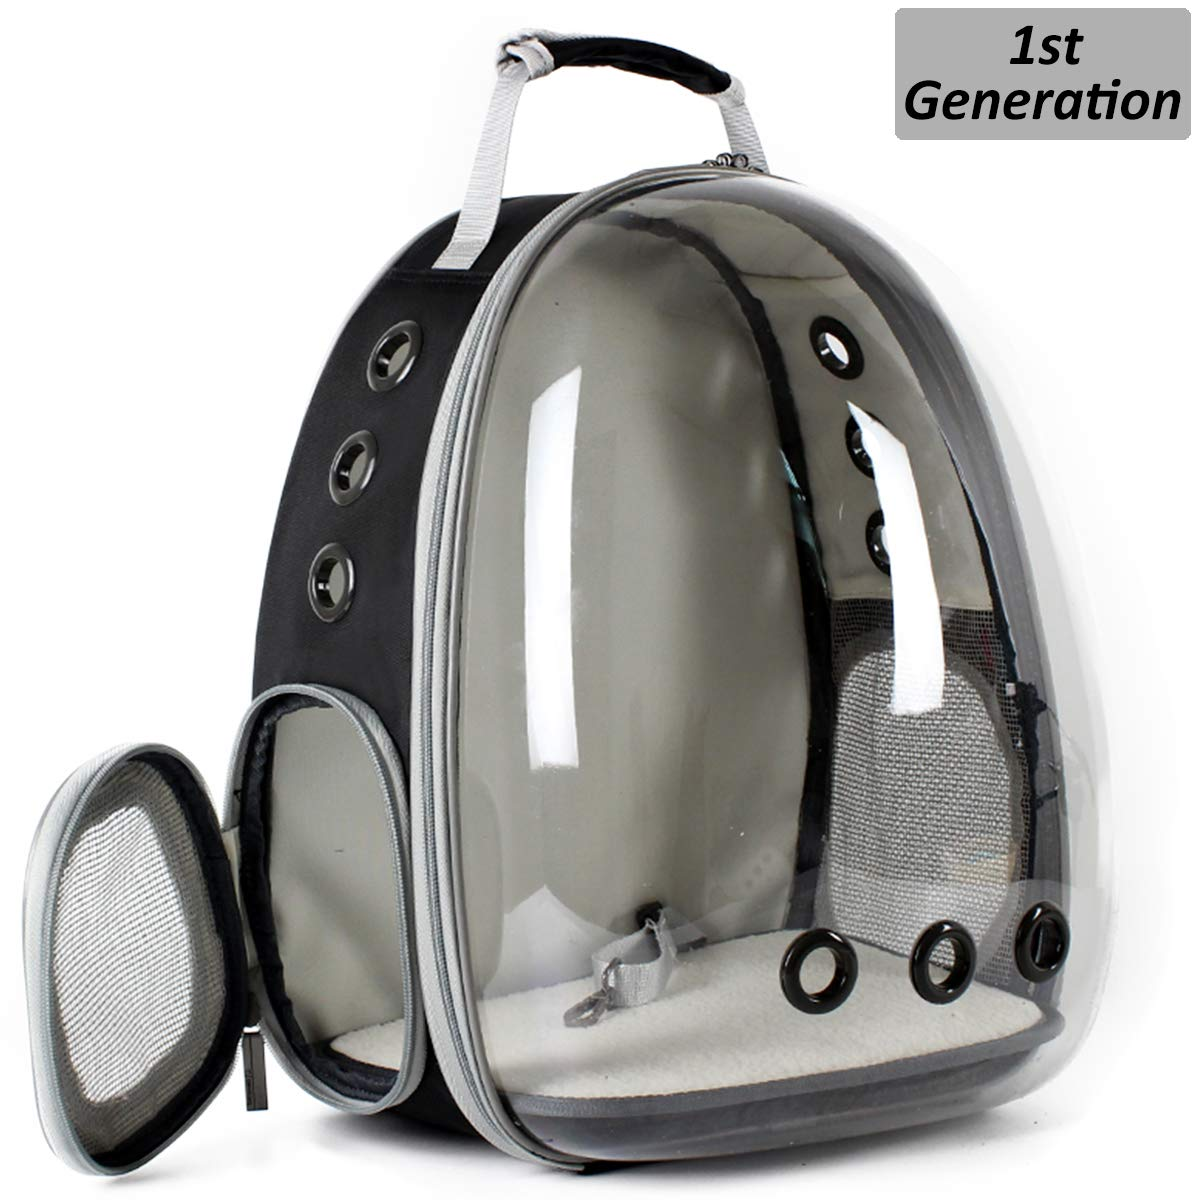 Hcupet Clear Kitten Backpack, Airline Approved Space Capsule Pet Carrier Backpack for Small Dog, Transparent Waterproof Cat Carrying & Holding Outdoor Backpack by Hcupet